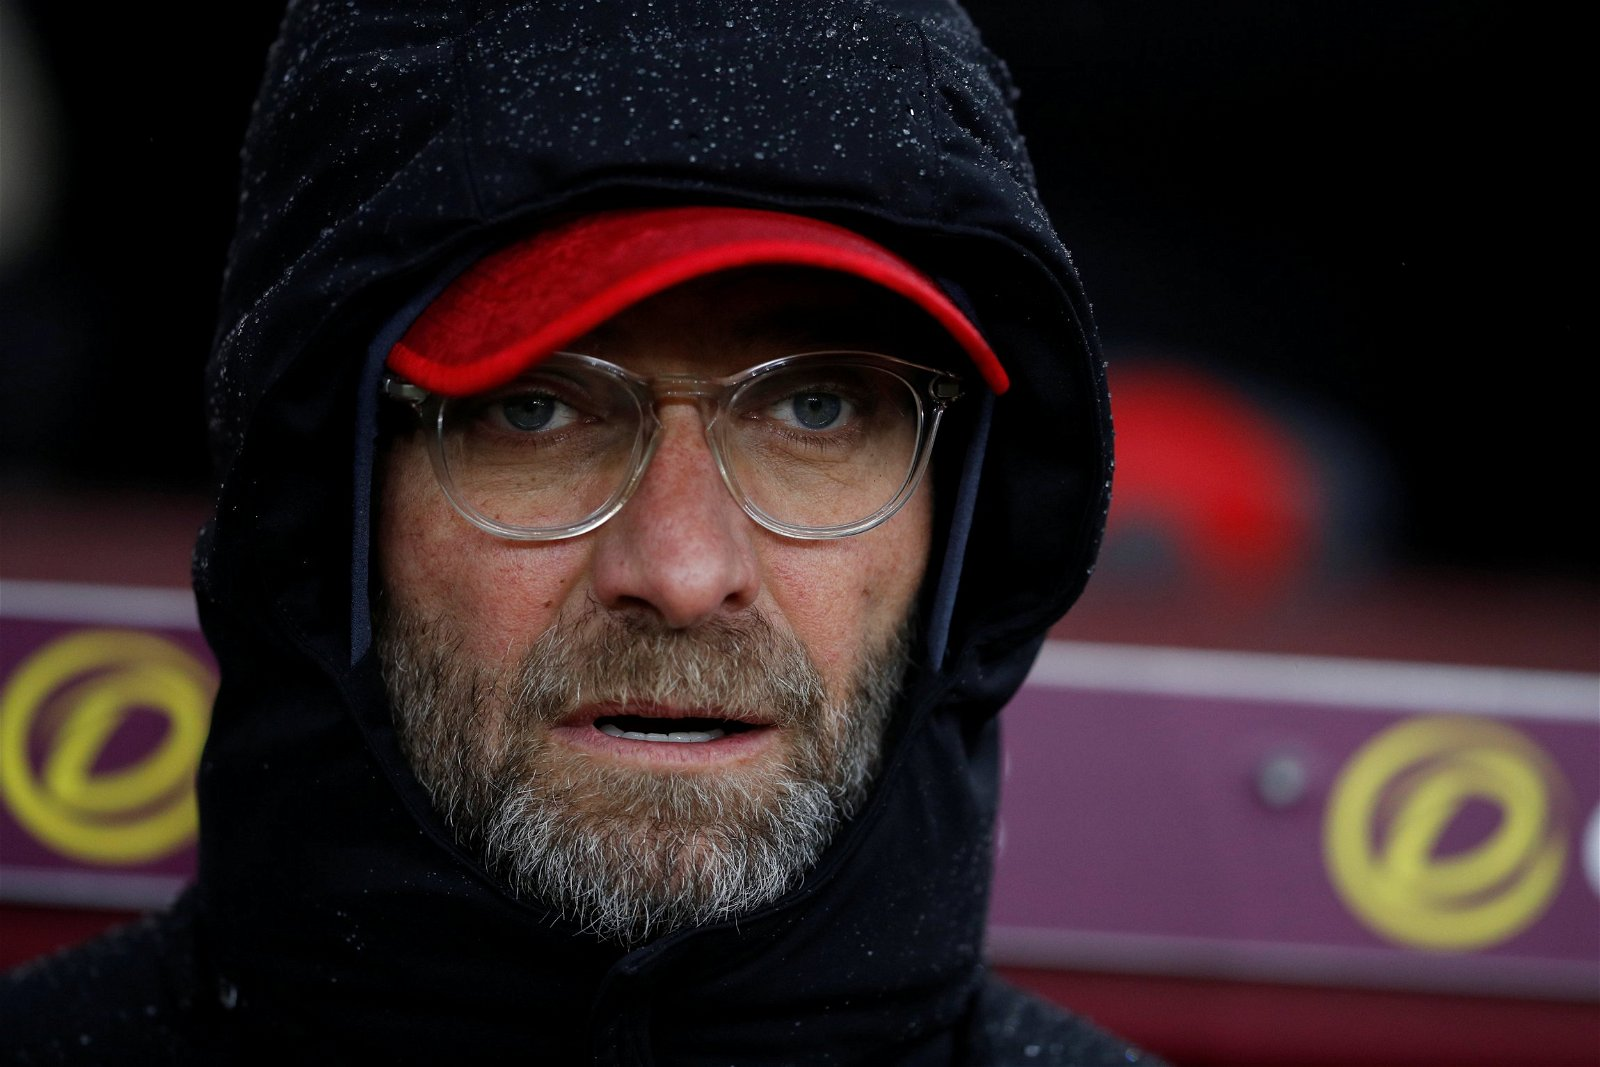 Early promise has stalled at Liverpool under Jurgen Klopp